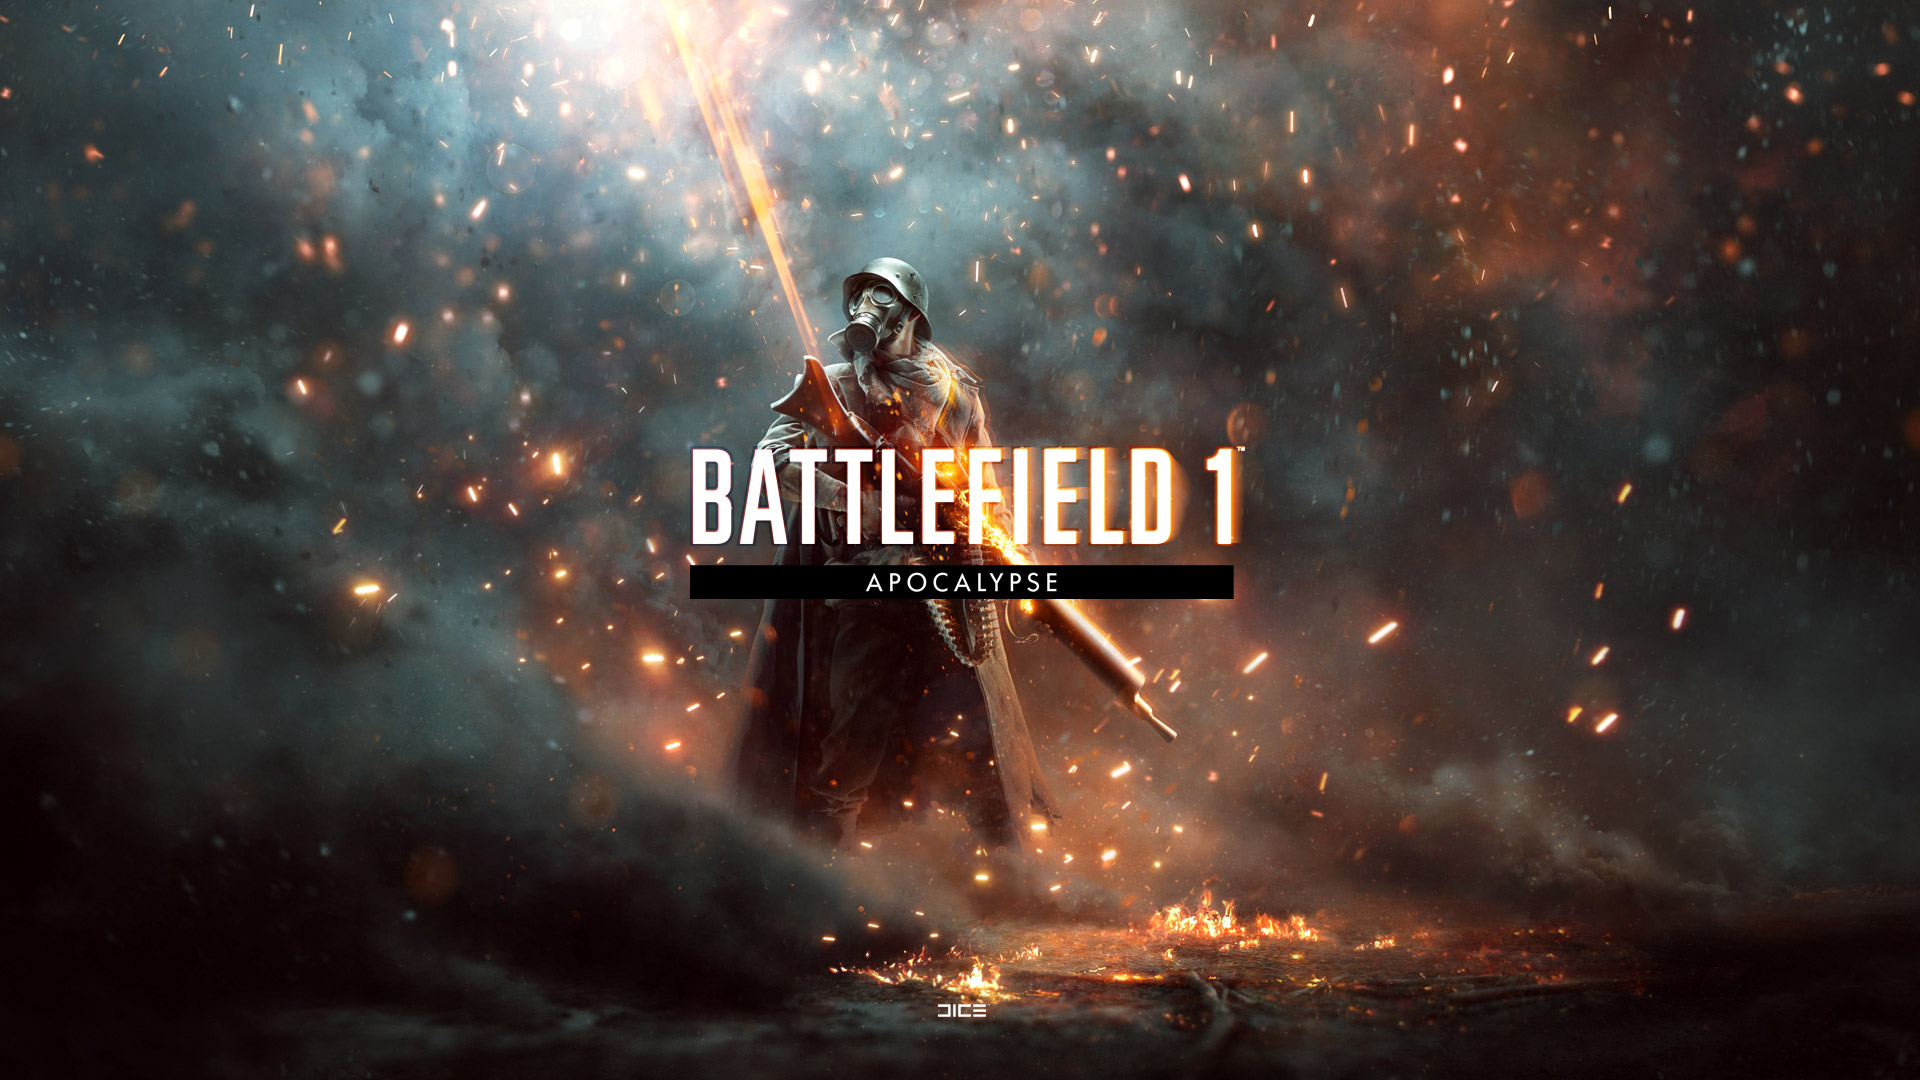 Free Battlefield 1 Wallpaper in 1920x1080